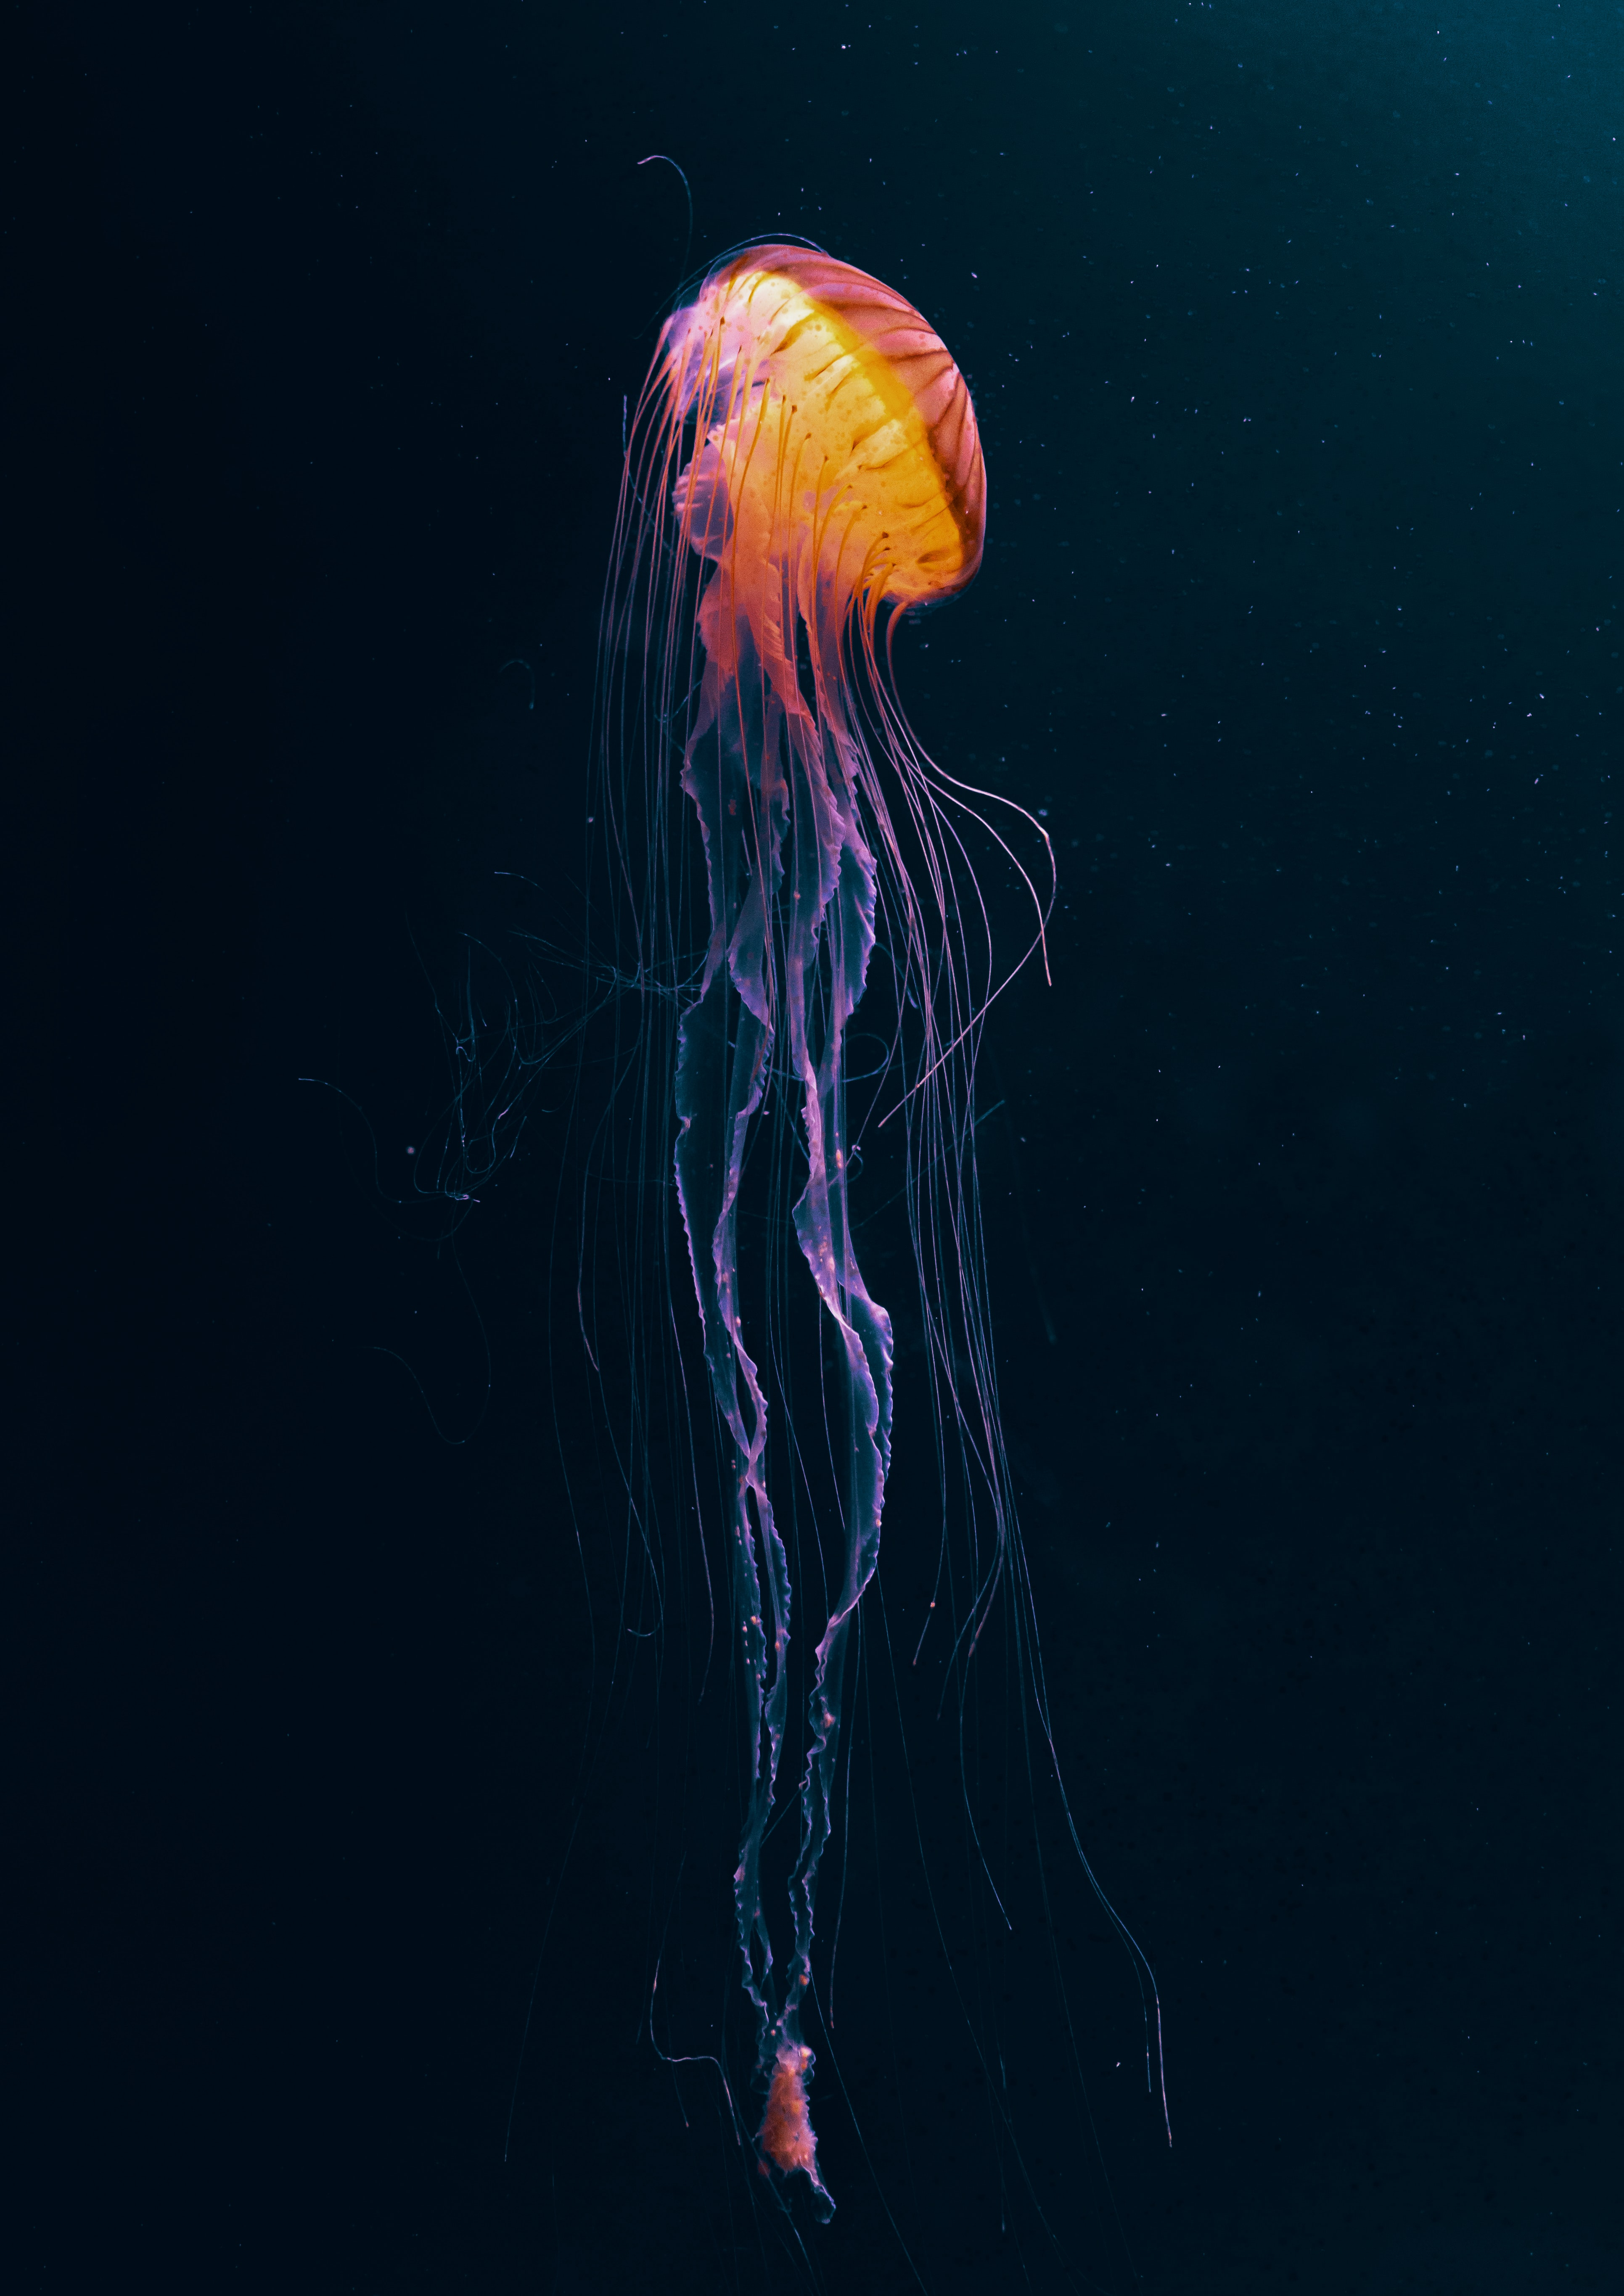 130538 download wallpaper Animals, Jellyfish, Tentacles, Underwater World, Animal, Dark screensavers and pictures for free